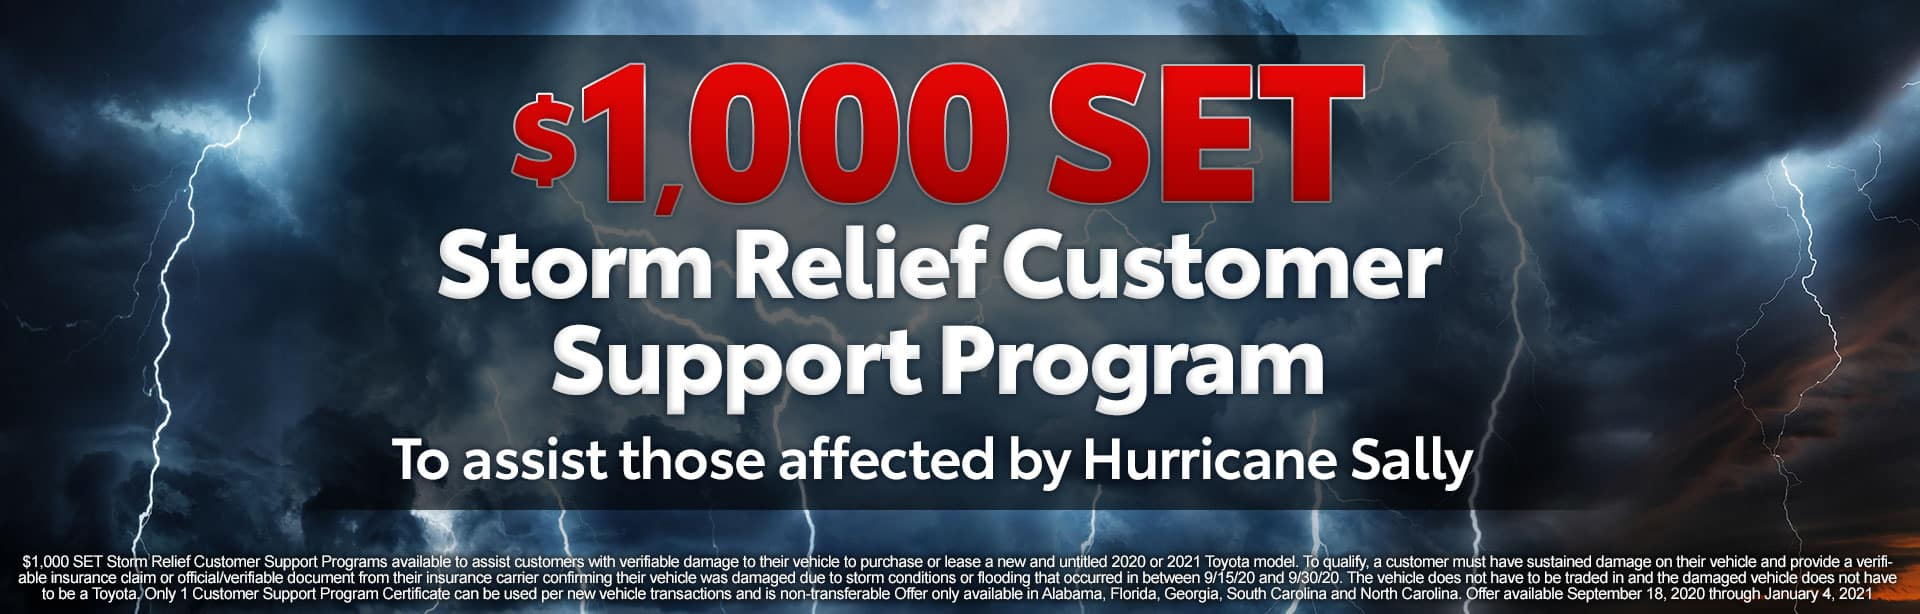 $1,000 SET Storm Relief Customer Support Program at Toyota of Fort Walton Beach!